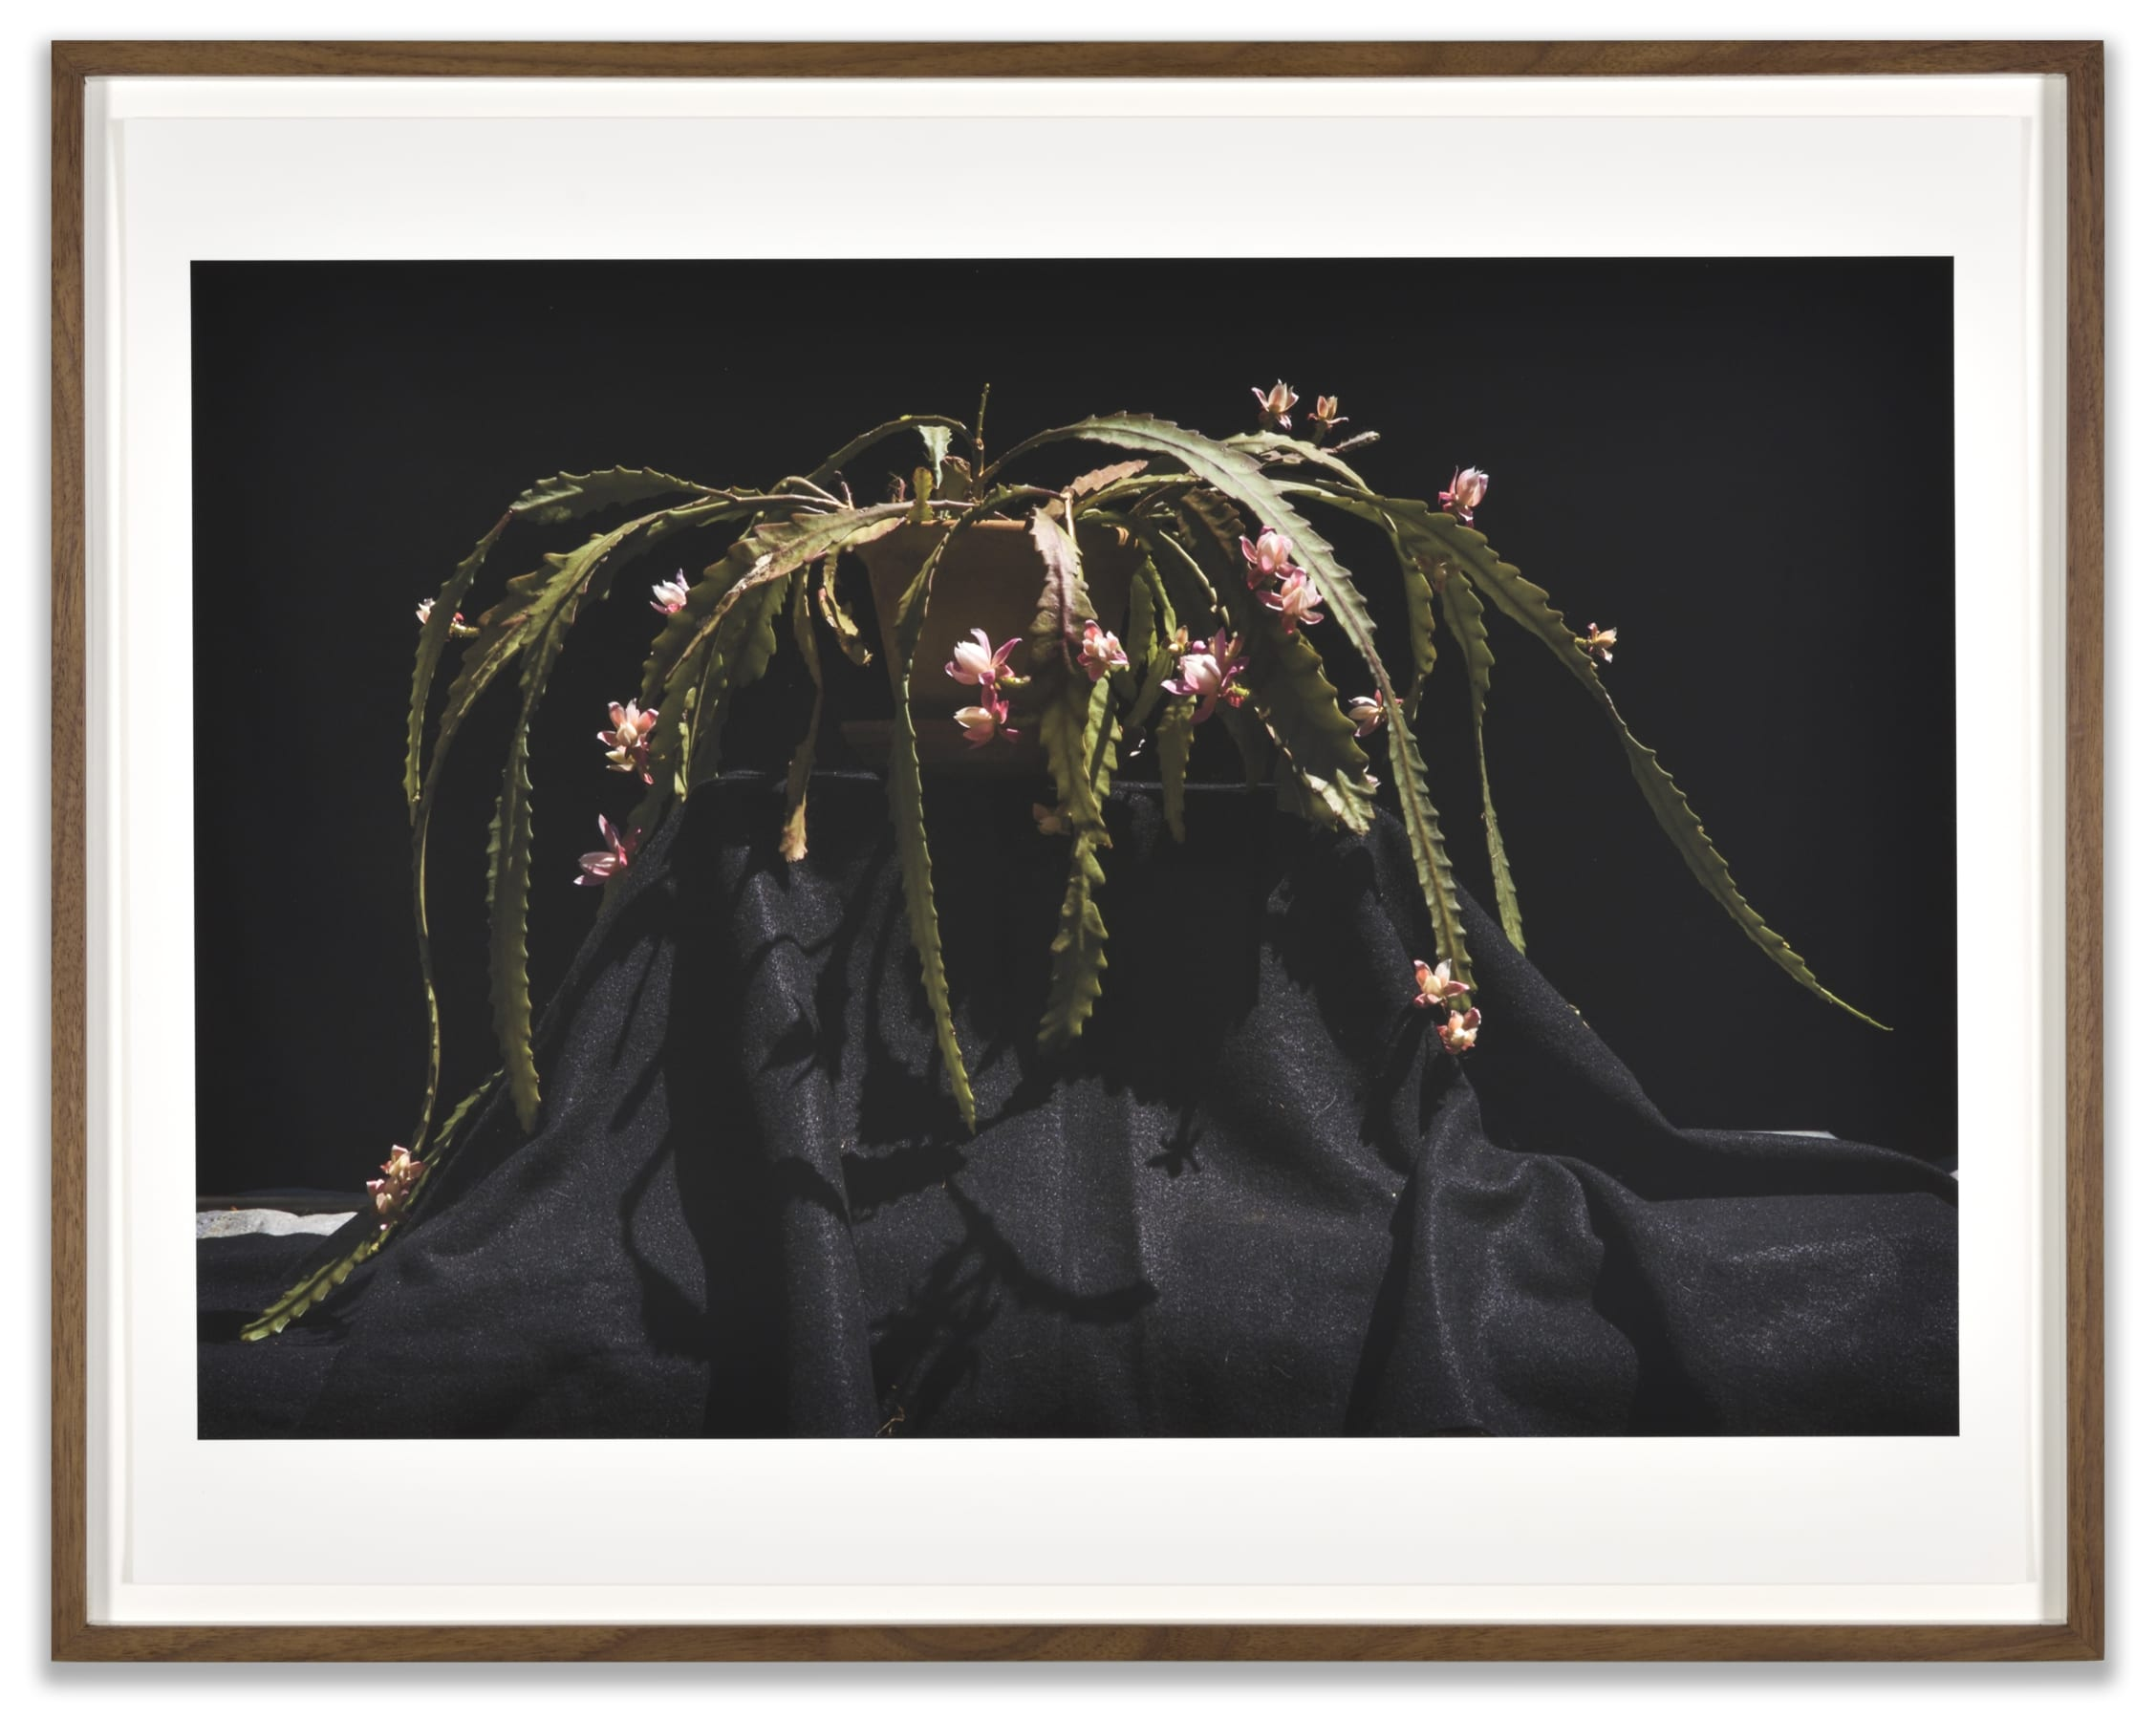 A framed photograph of a flowering cactus by Luciano Perna